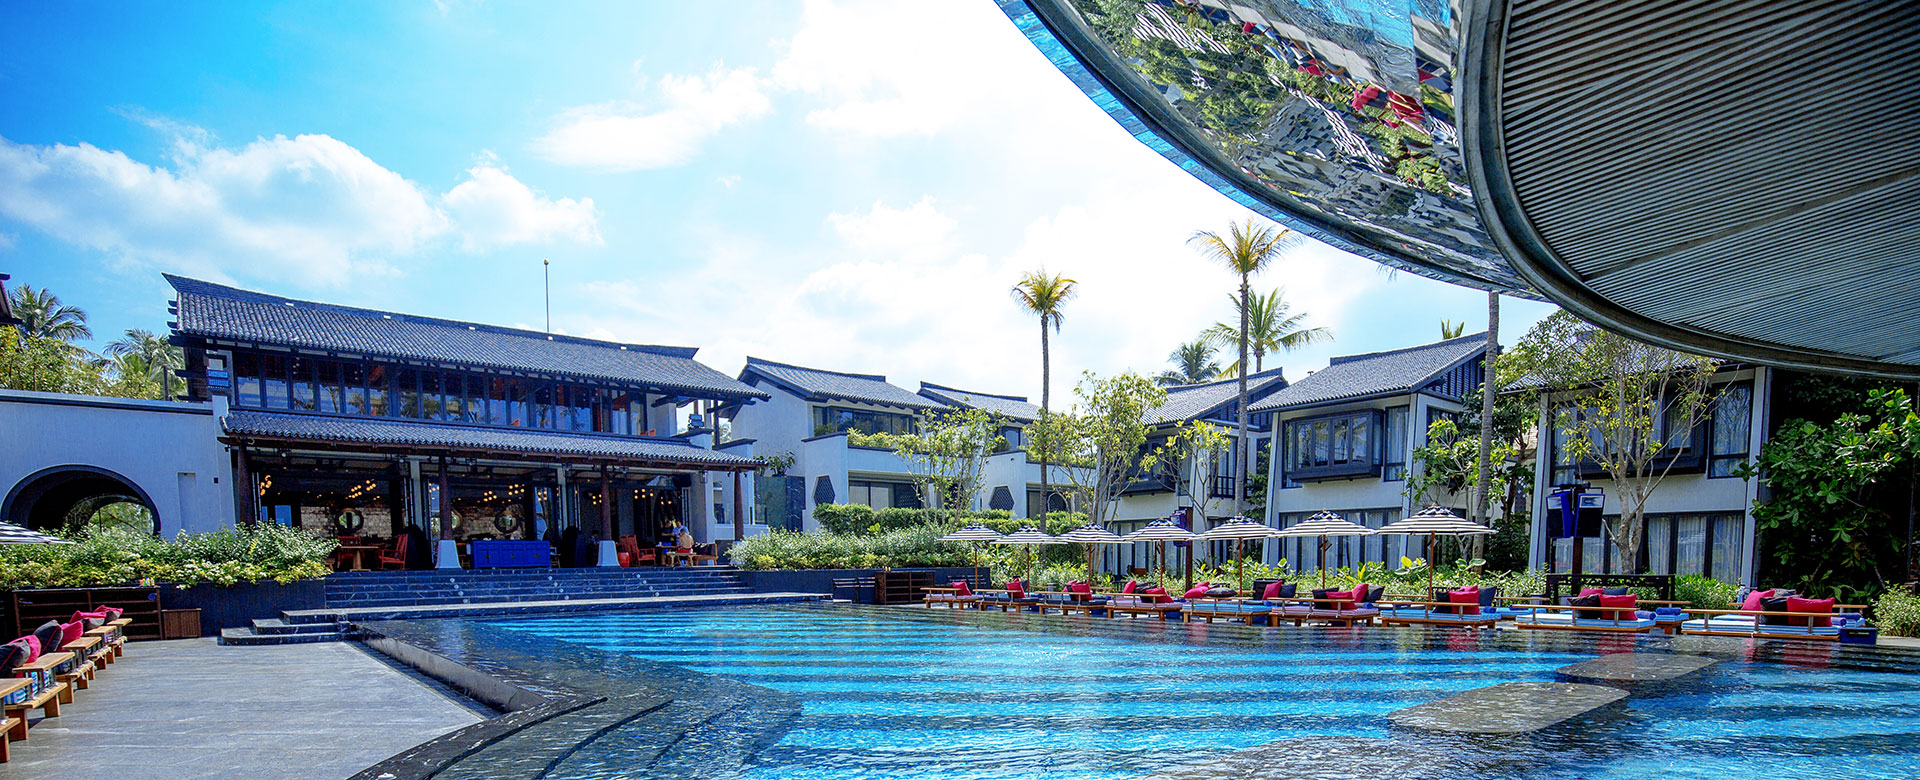 3-Over-View-Baba-Beach-Club-Phuket-Khok-Kloi-Best-Luxury-Beach-resort-Hotel